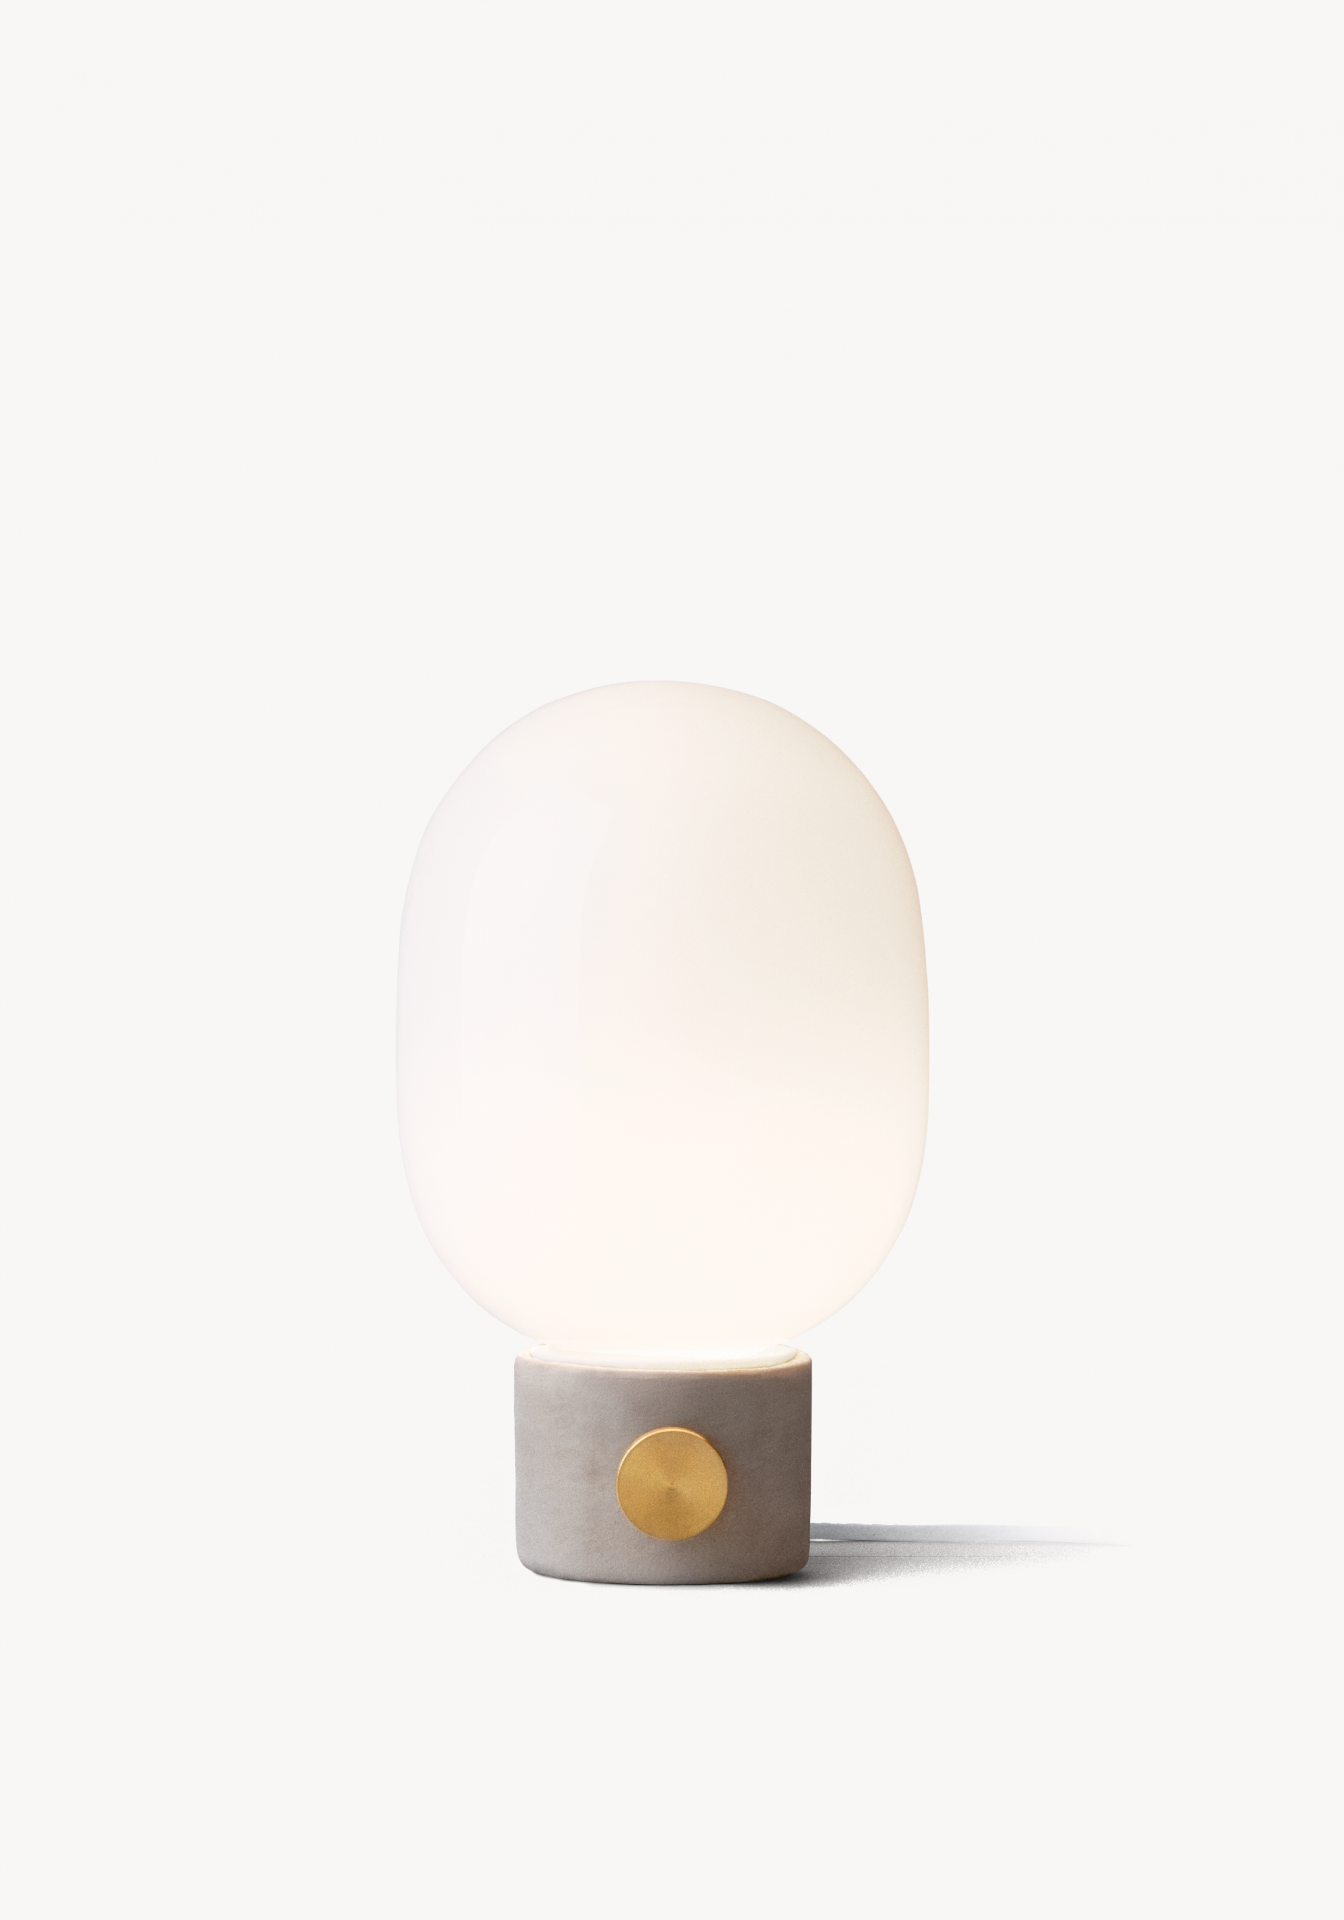 Honest Materials U2013 Concrete And Brass U2013 Are Transformed Into A Lamp Of  Beauty By Stockholm